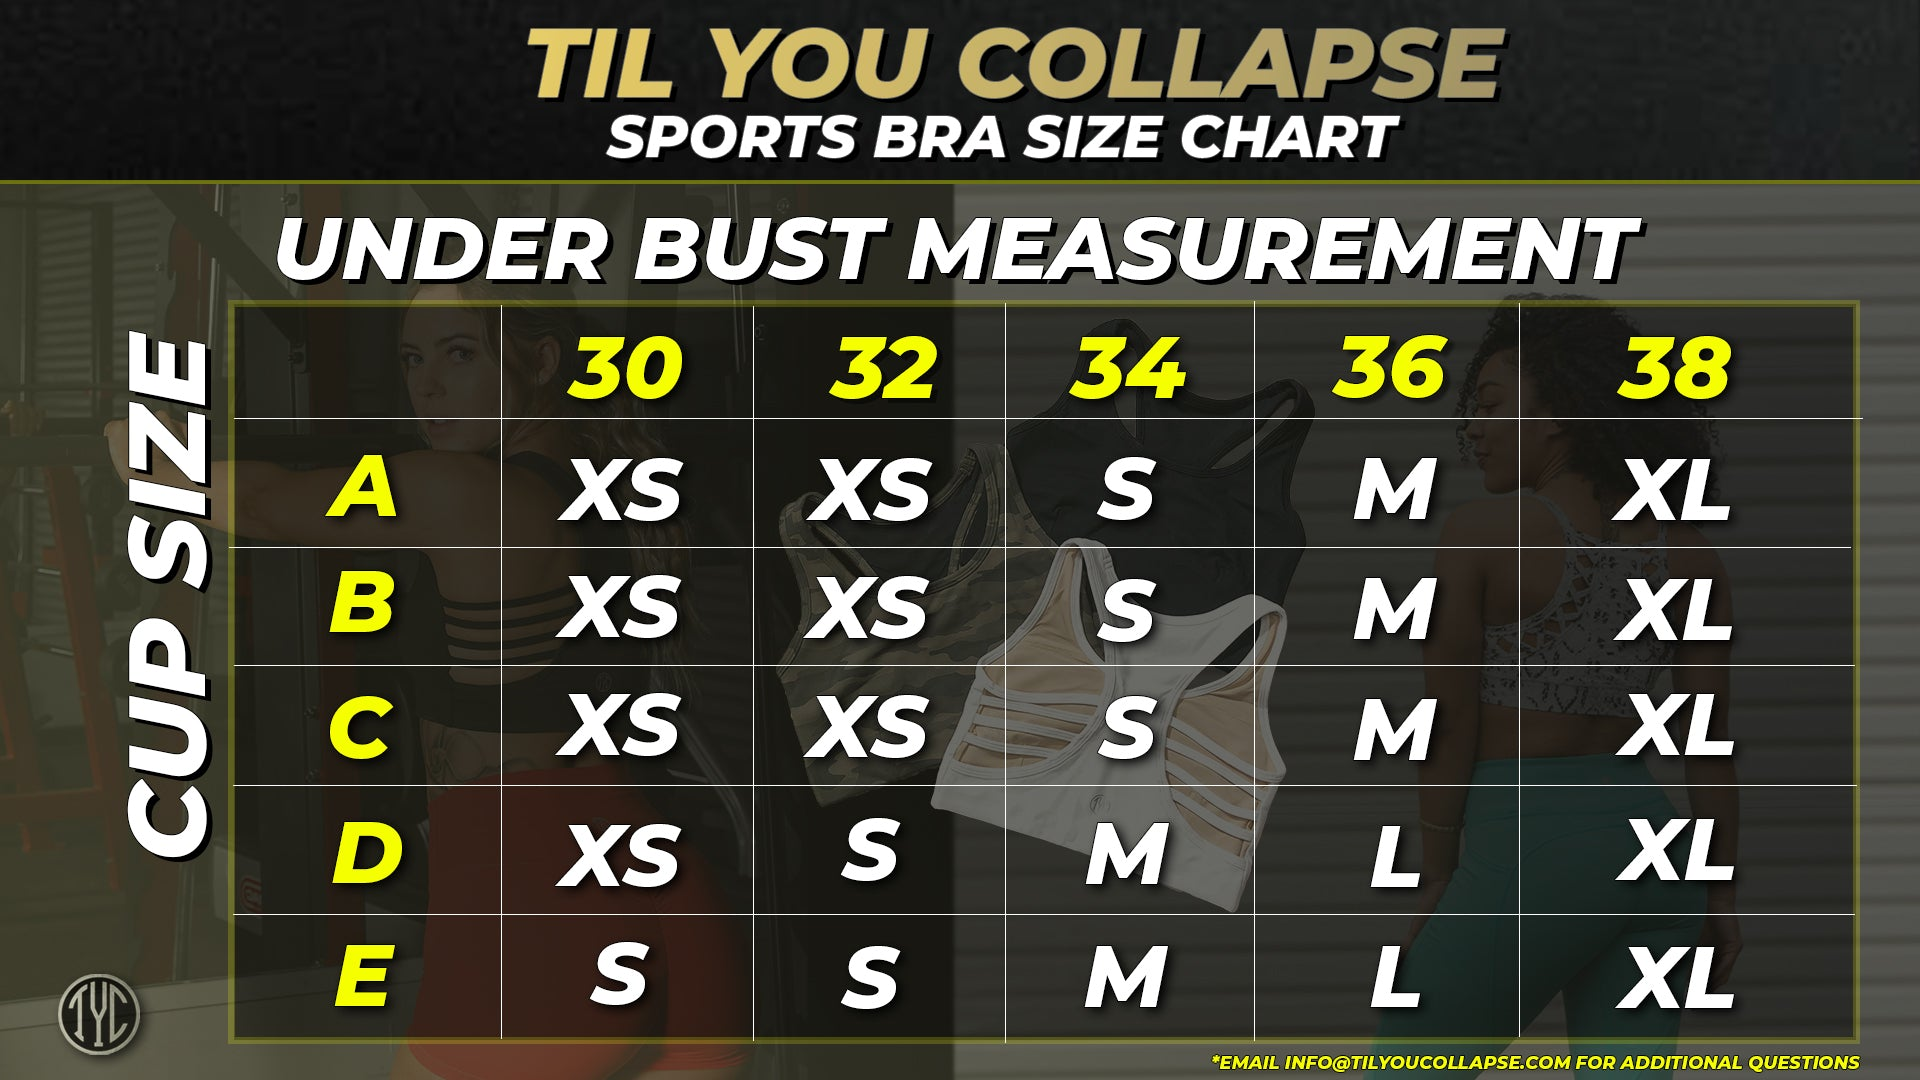 Til You Collapse Sports Bra Size Chart